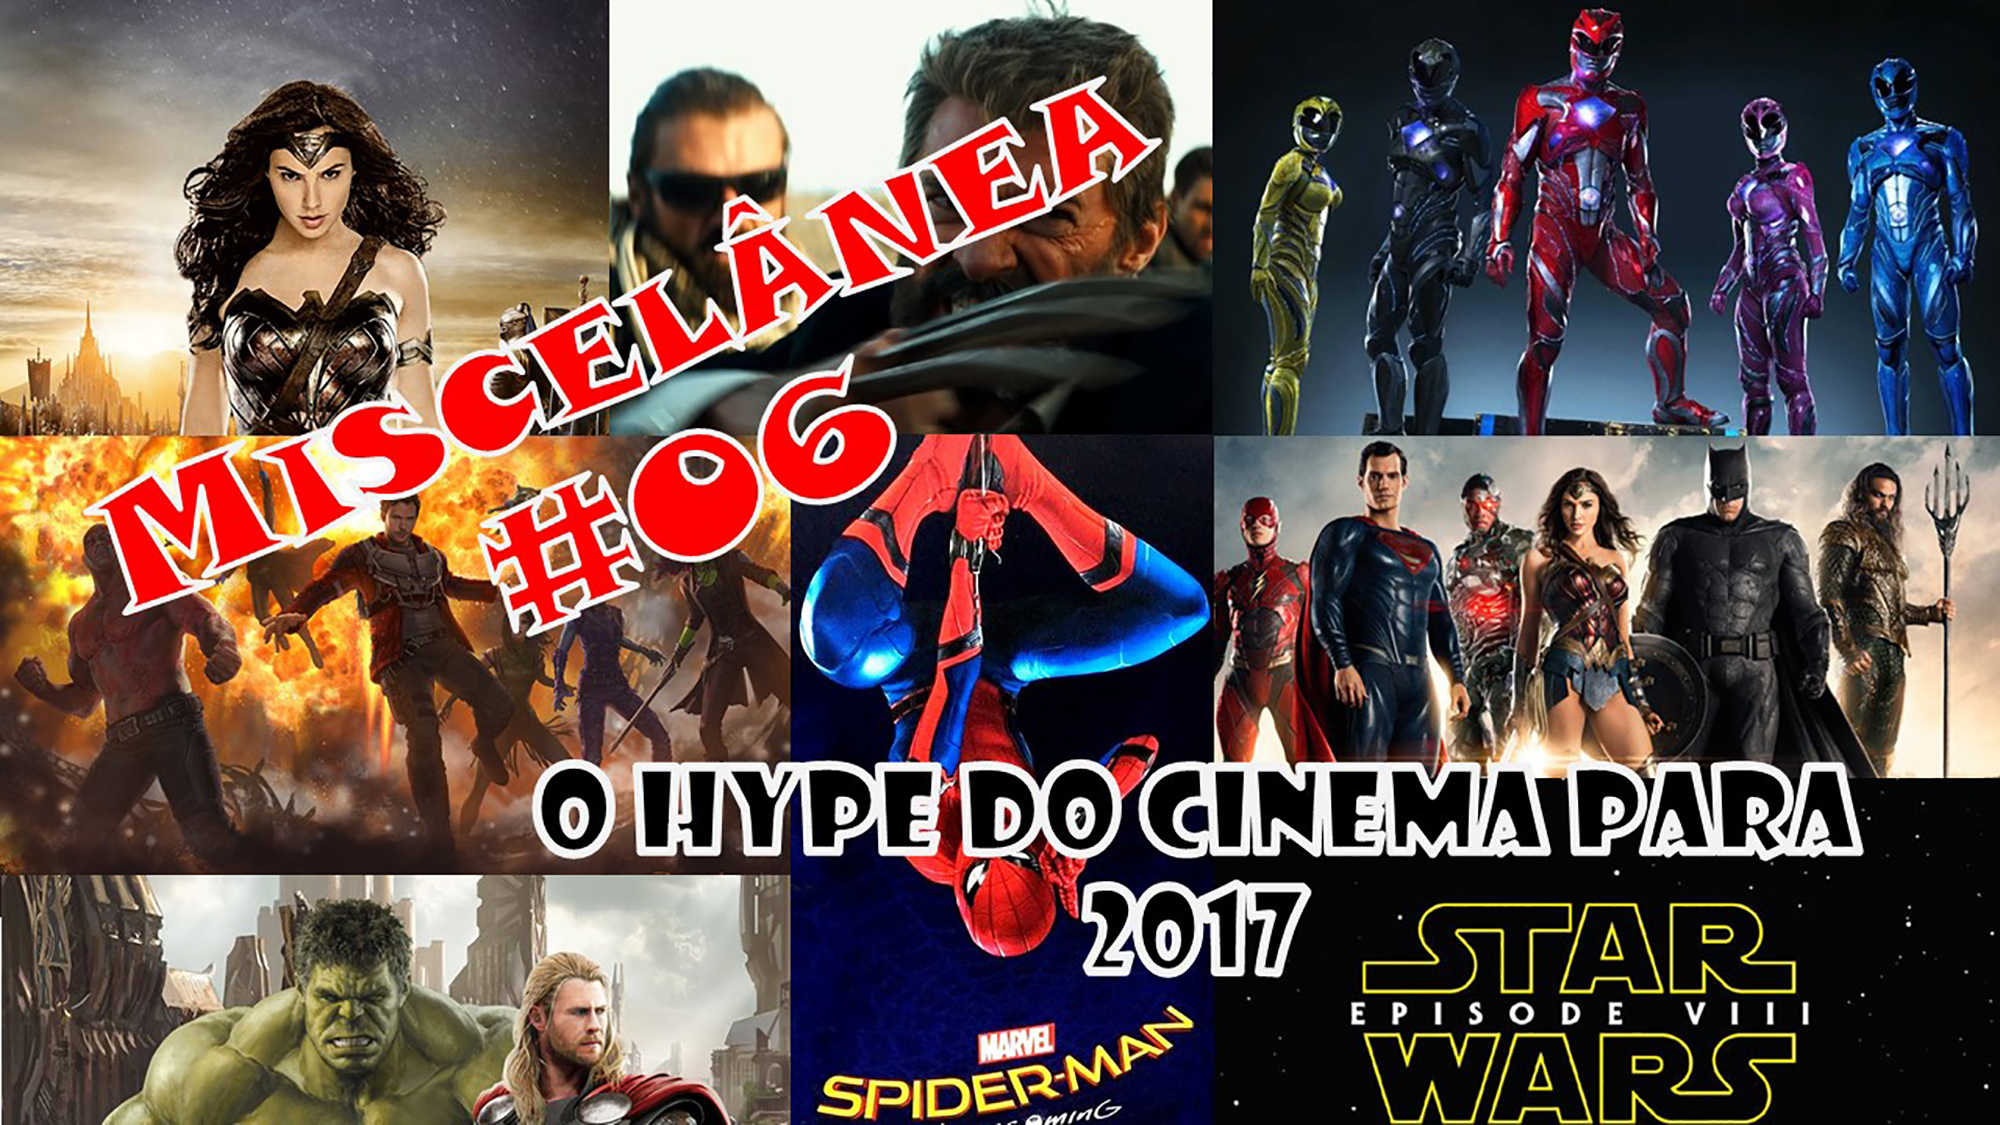 Miscelânea – O Hype do Cinema para 2017